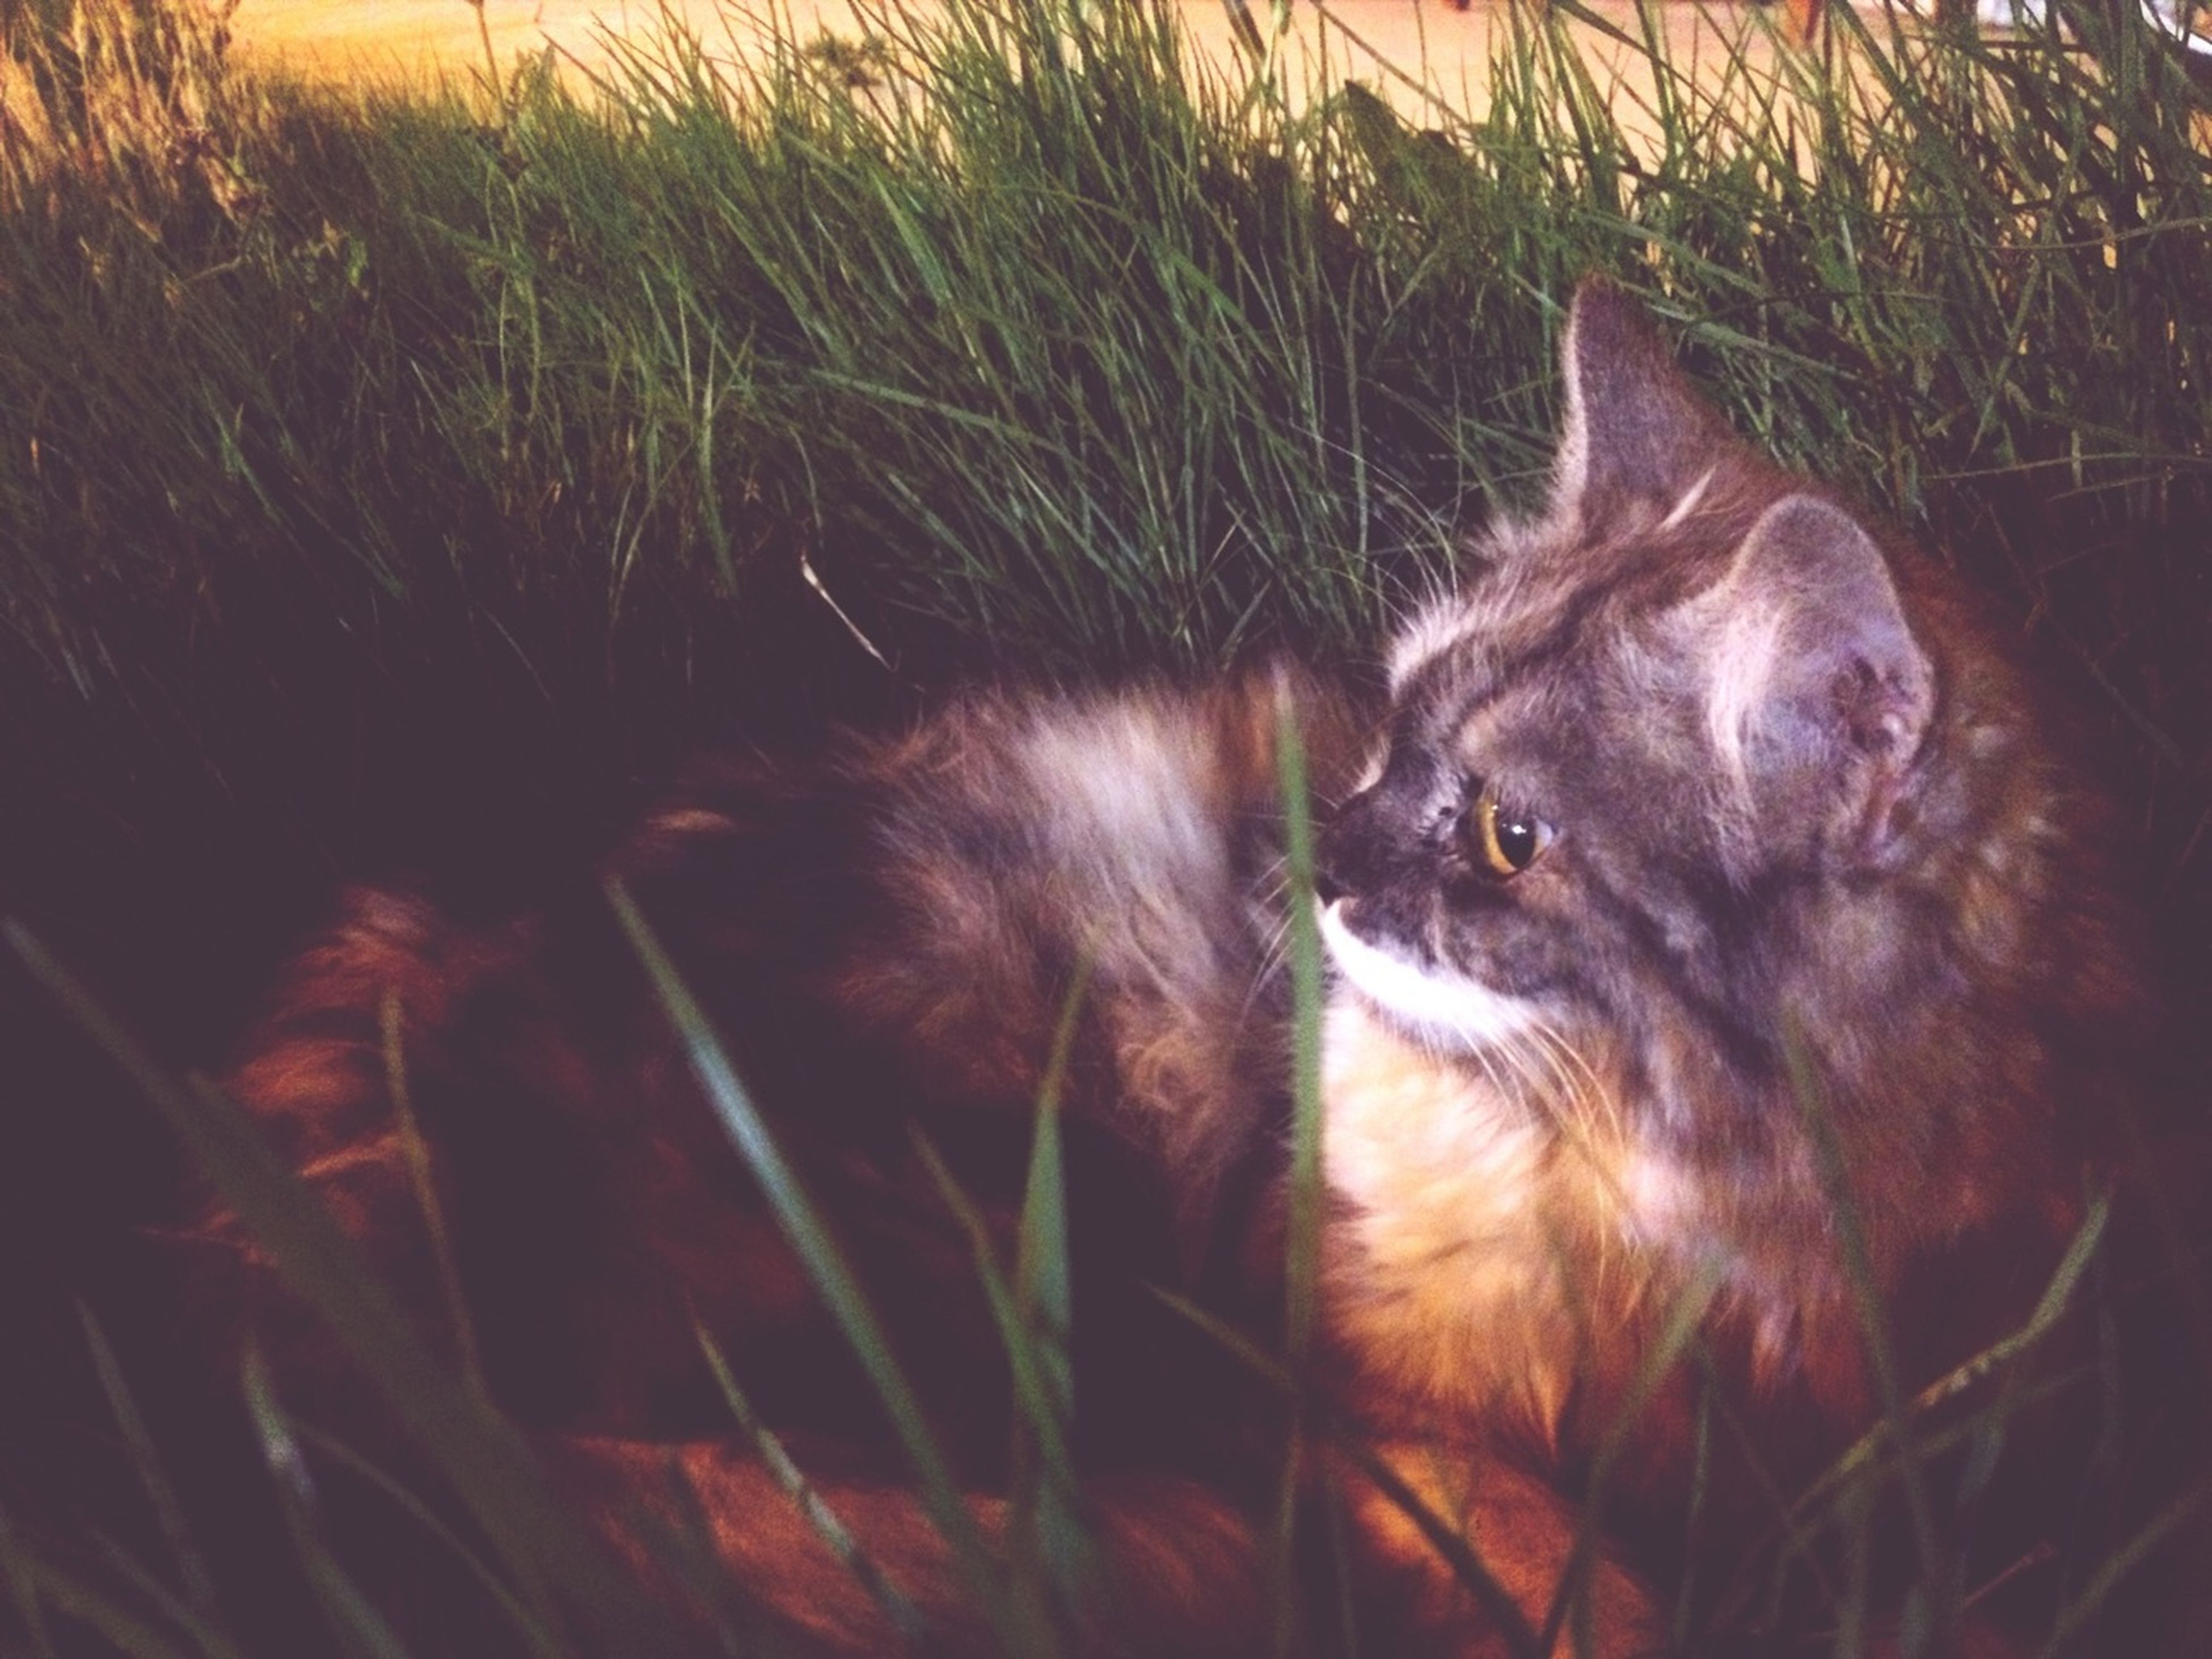 animal themes, domestic animals, pets, one animal, mammal, domestic cat, cat, looking at camera, feline, portrait, grass, whisker, dog, relaxation, no people, field, alertness, animal head, sitting